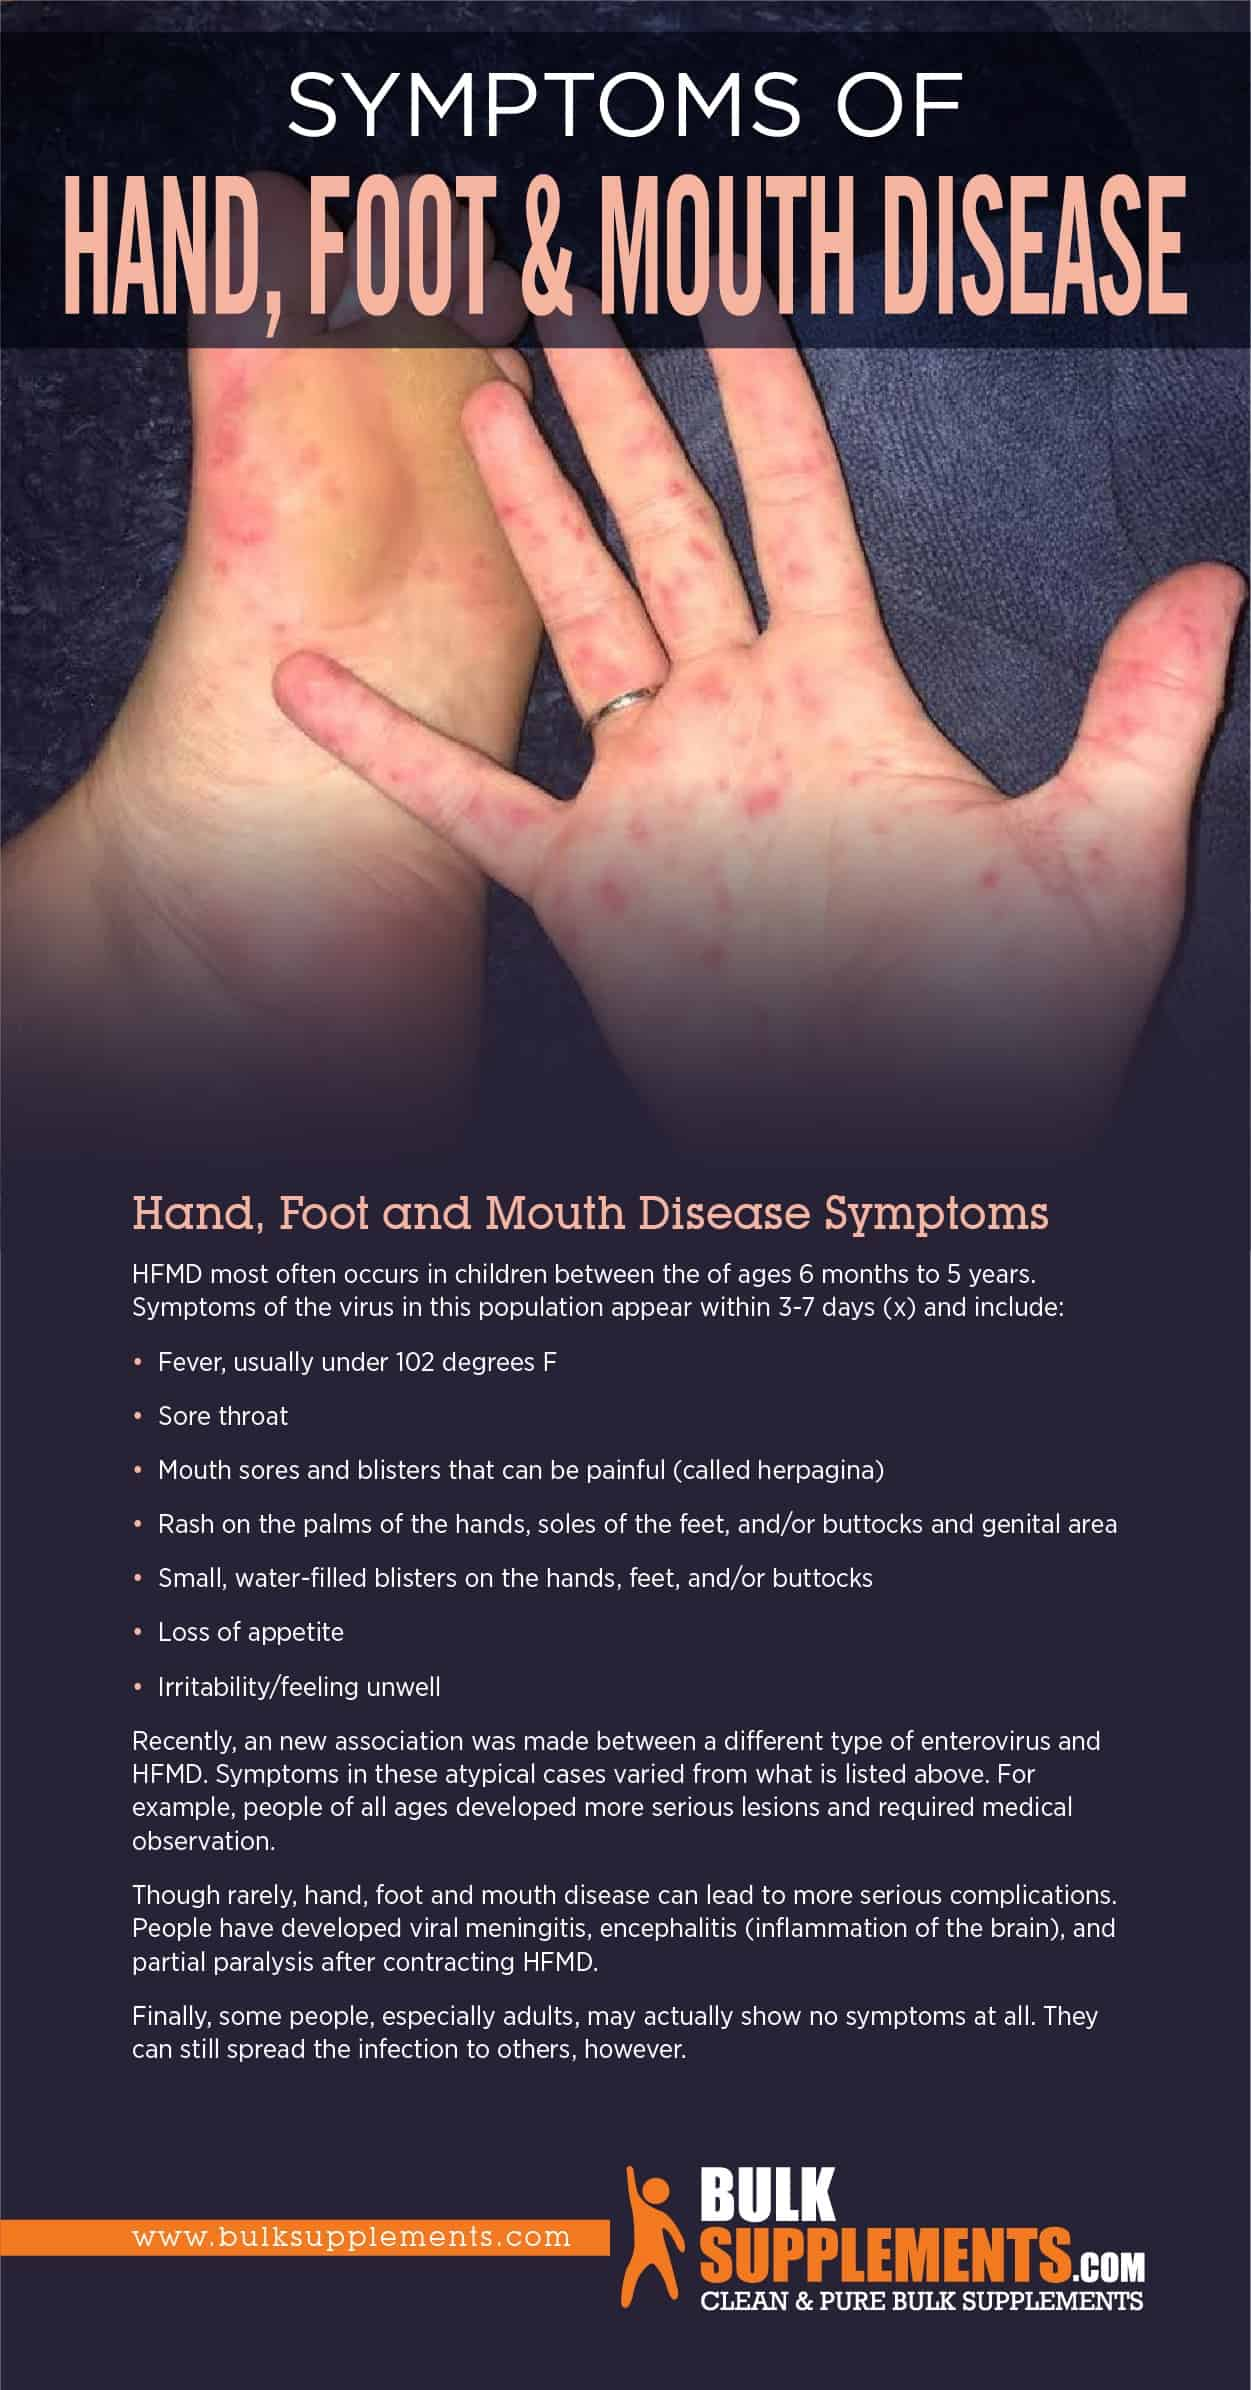 Symptoms of Hand, Foot & Mouth Disease